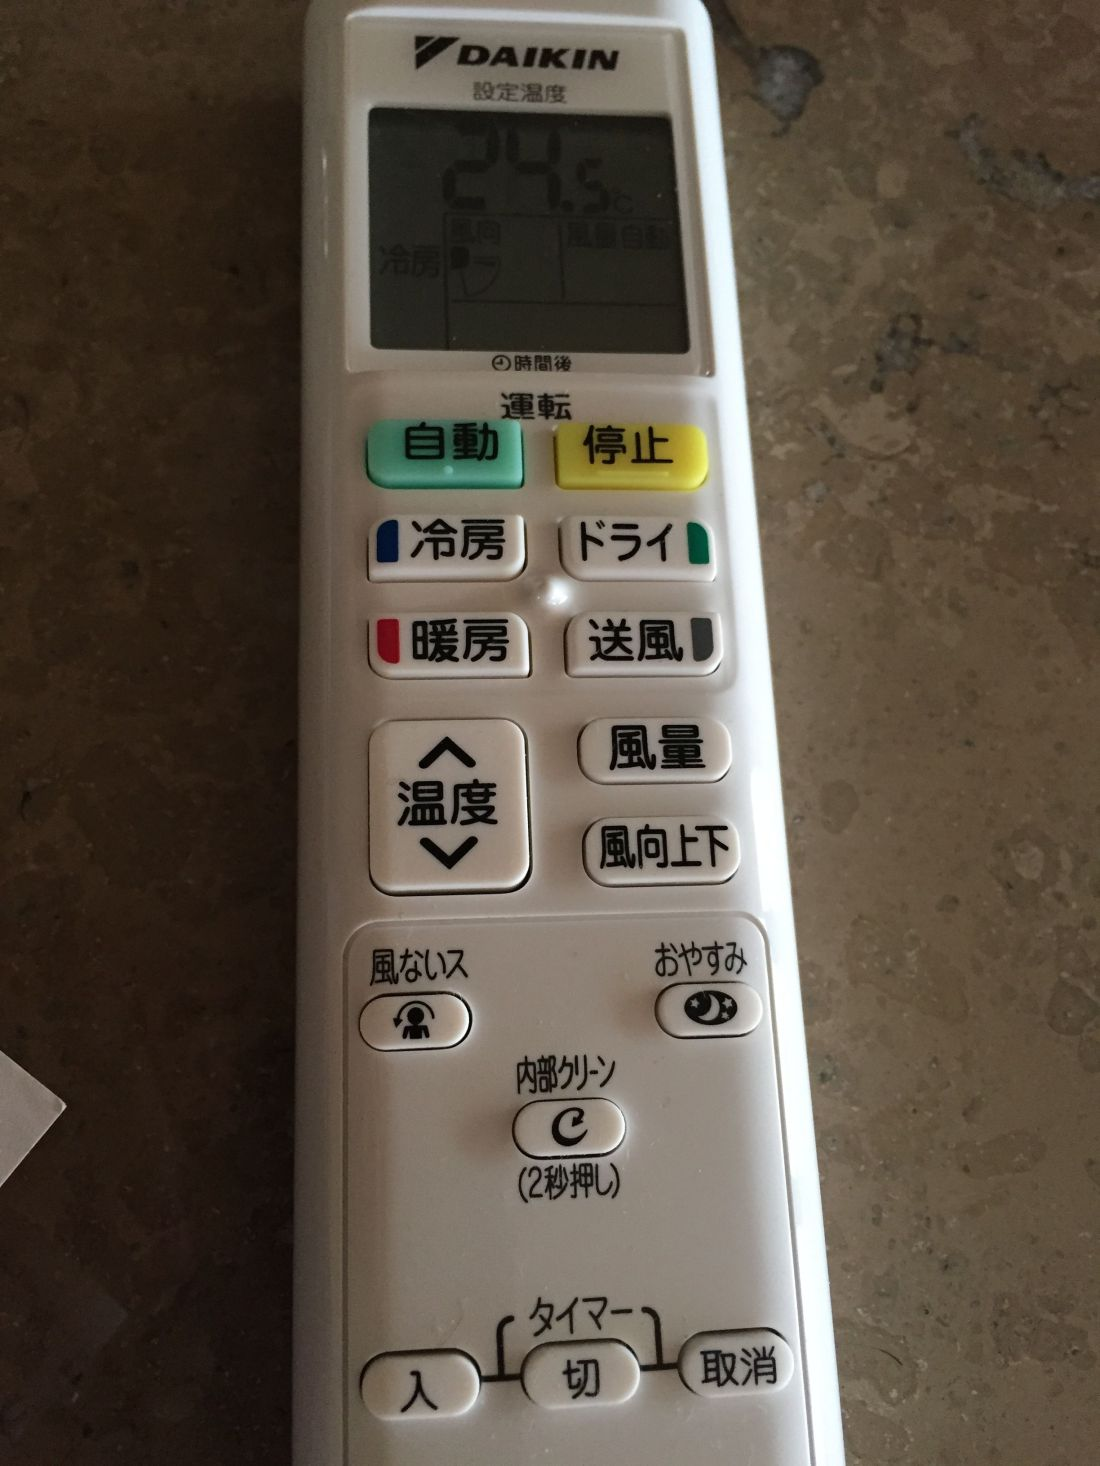 Remote control for air conditioner.  I am happy to report we can turn it off and on and raise and lower the temperature.  It's anyone's guess what all the other buttons are for.